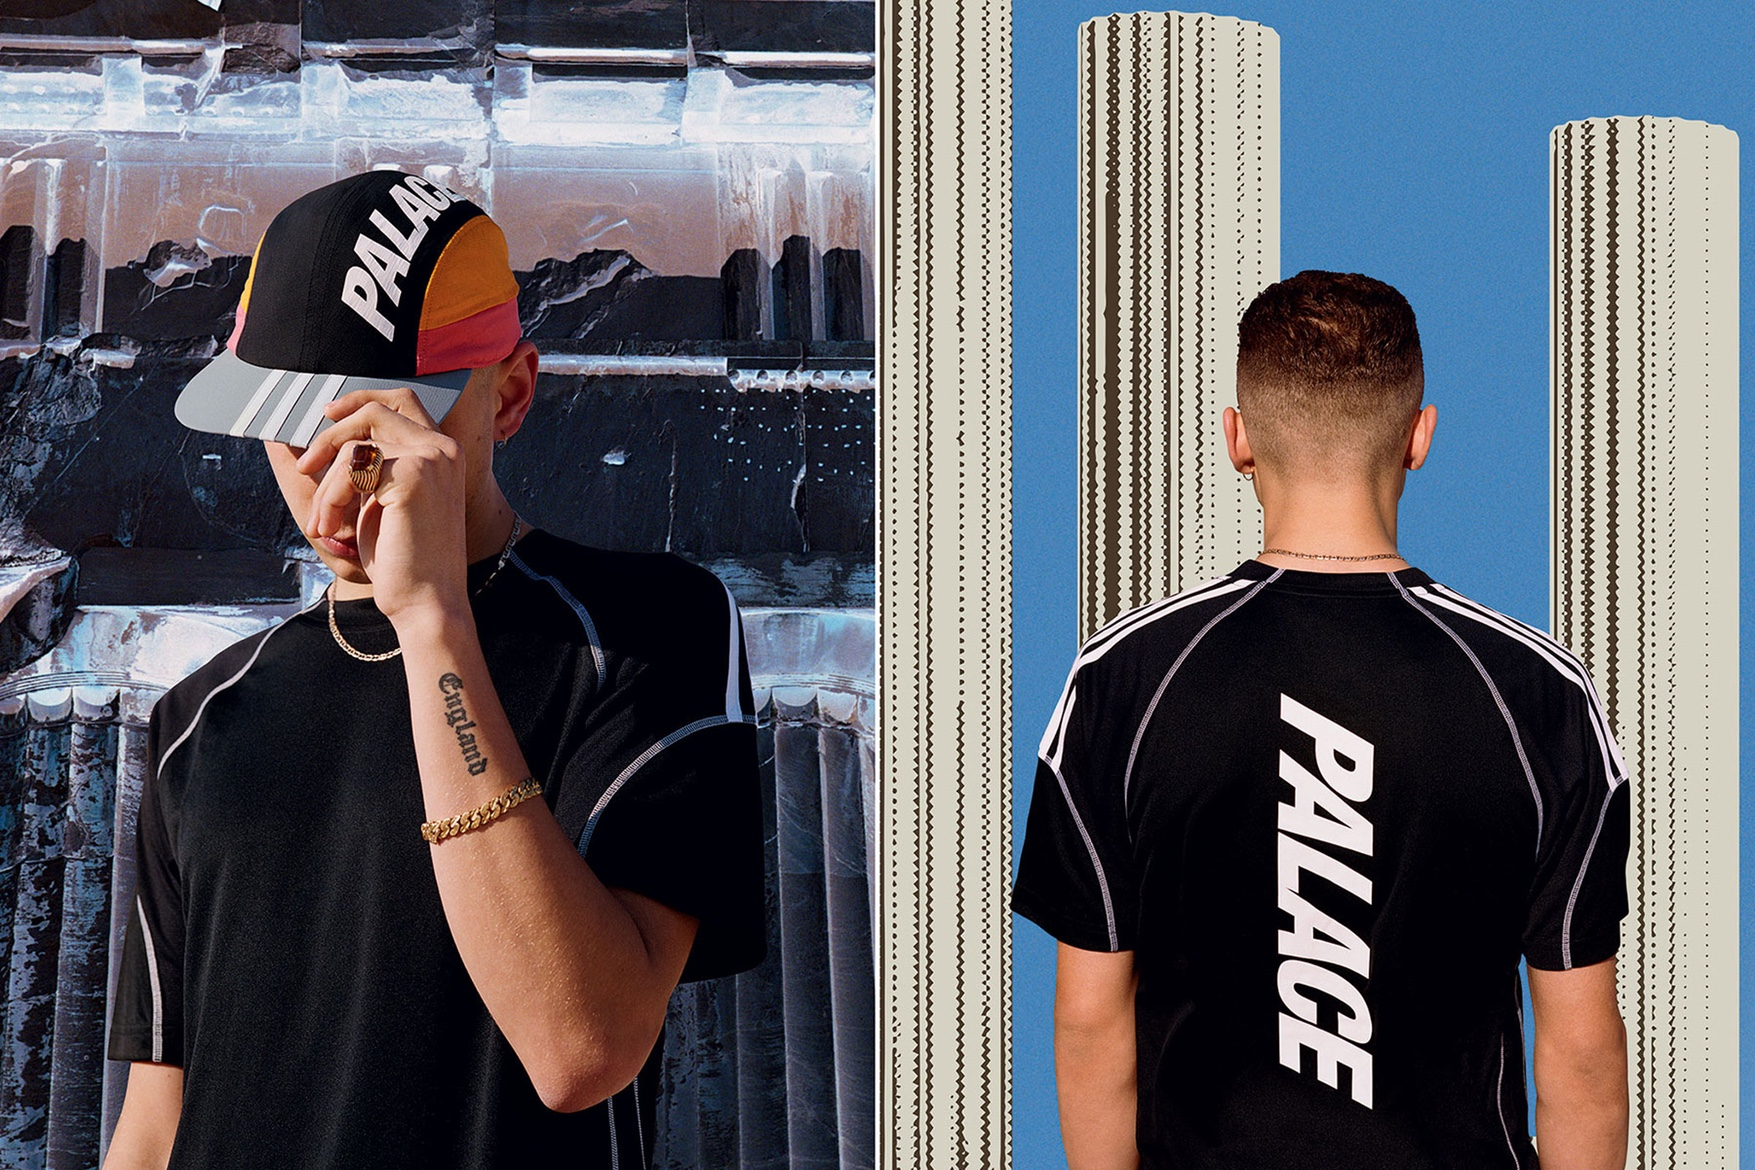 http-hypebeast.comimage201706palace-adidas-originals-2017-summer-collection-2